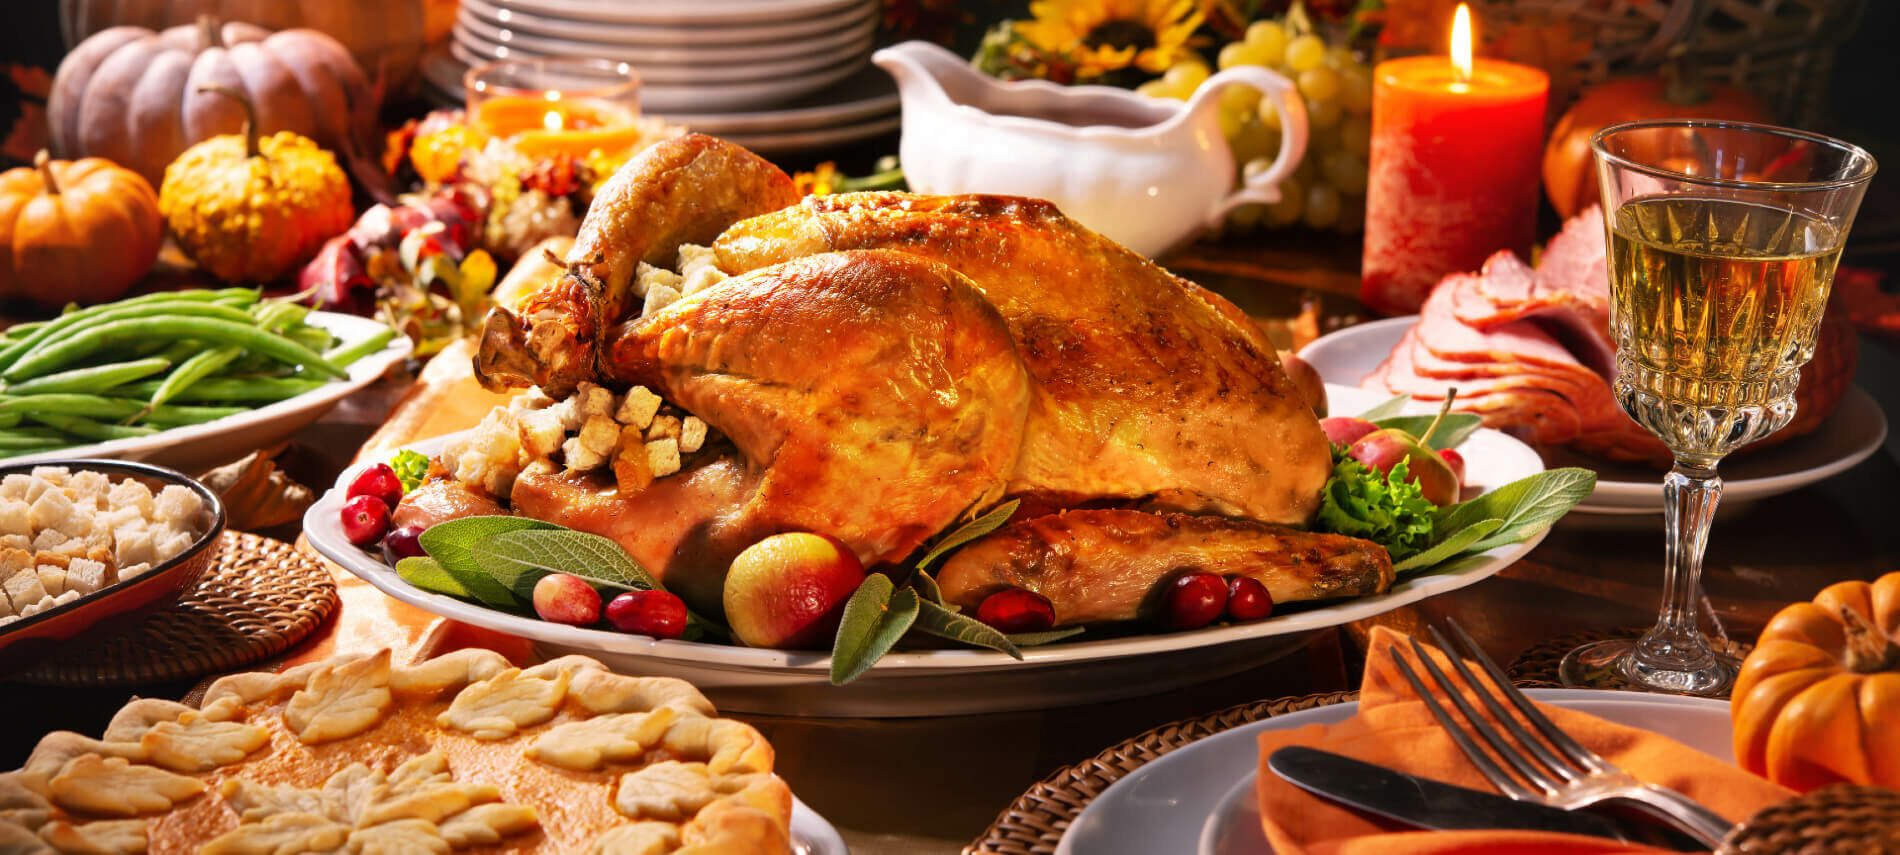 Thanksgiving dinner with turkey, gravy, potatoes, pumpkin pie, white dishes and yellow sunflowers